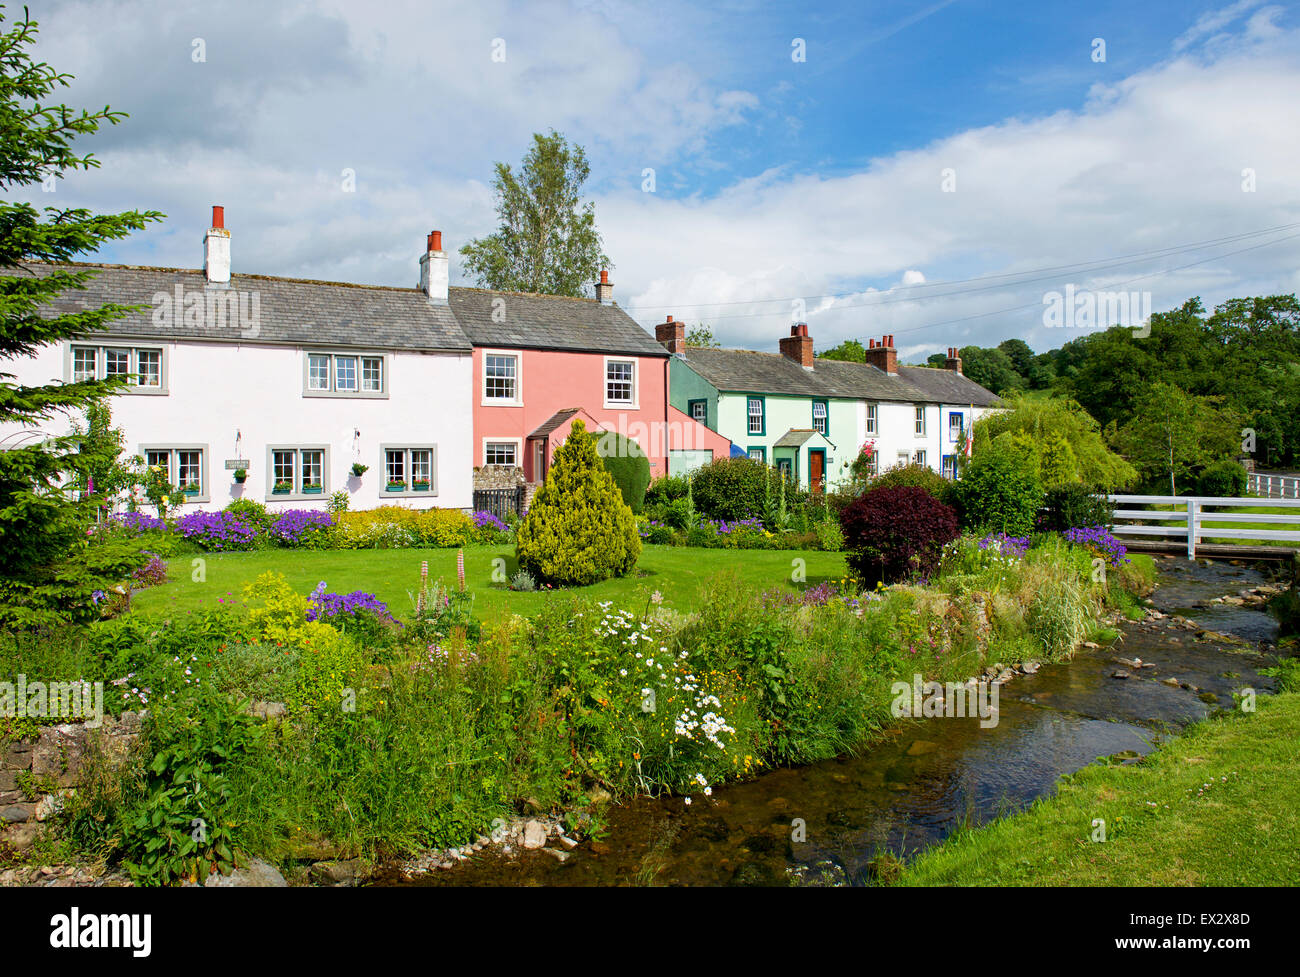 cottages-in-the-village-of-caldbeck-cumb